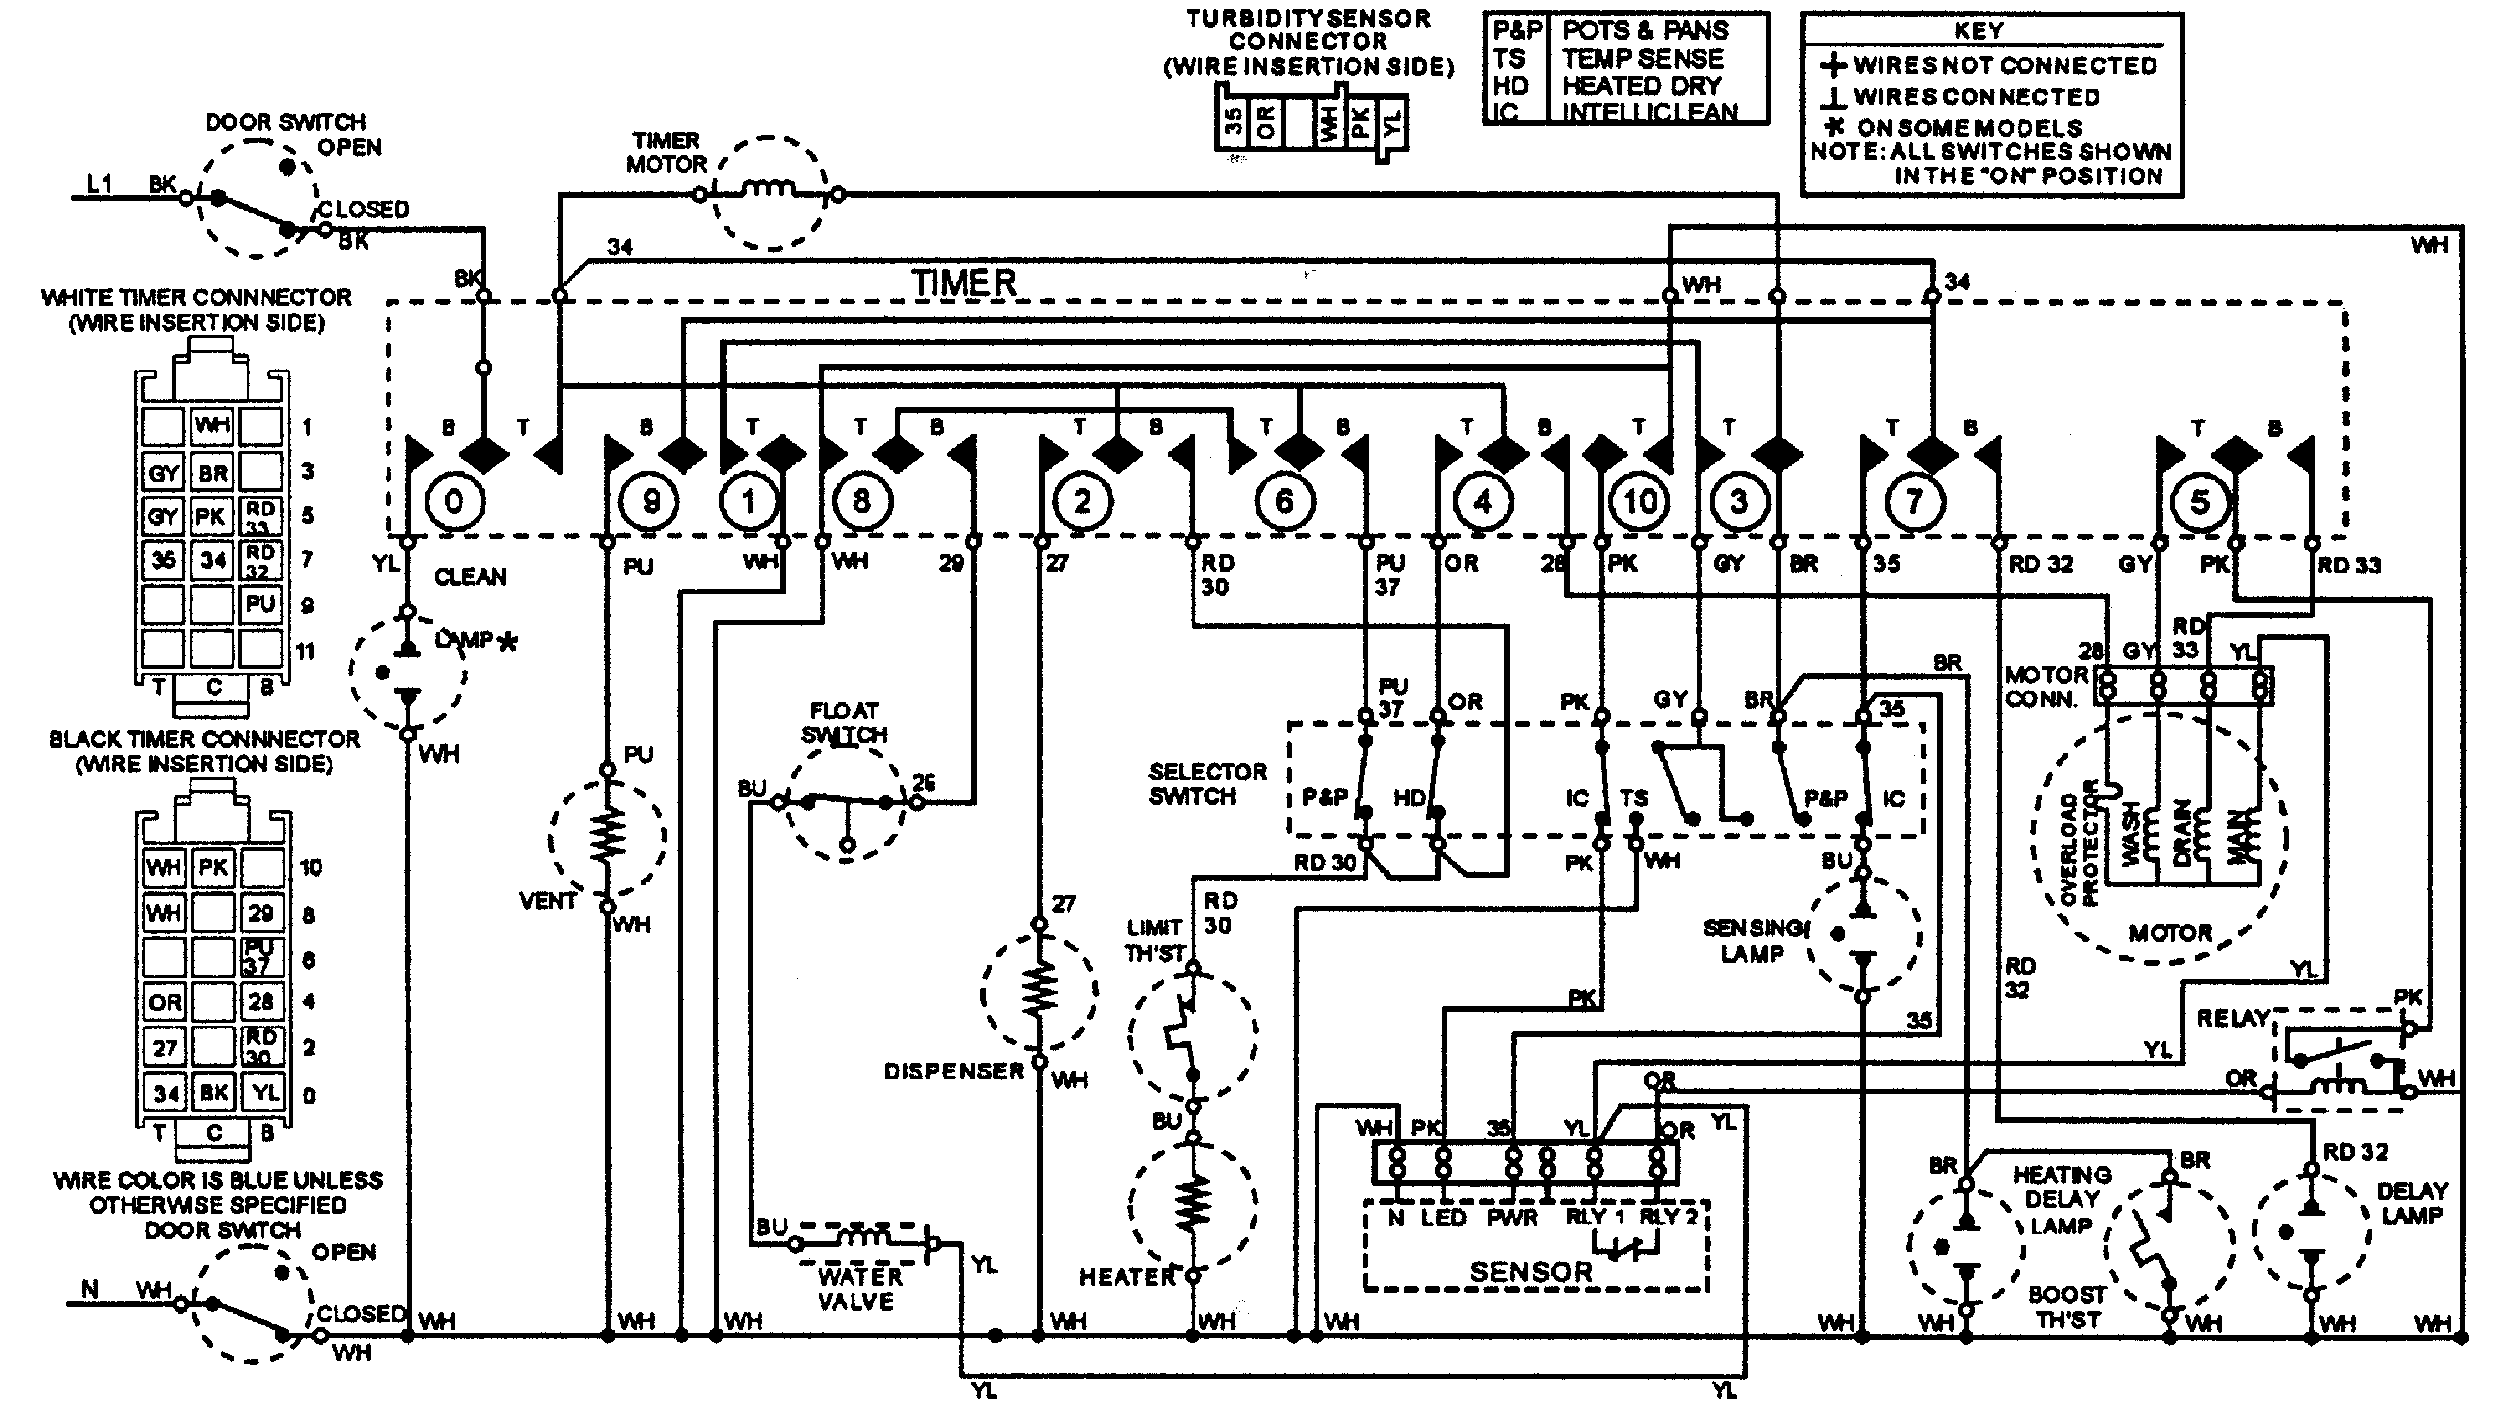 Whirlpool Schematic Diagrams - Electrical Wiring Diagram Of Maruti 800 Car  for Wiring Diagram Schematics | Whirlpool Schematic Diagrams |  | Wiring Diagram Schematics